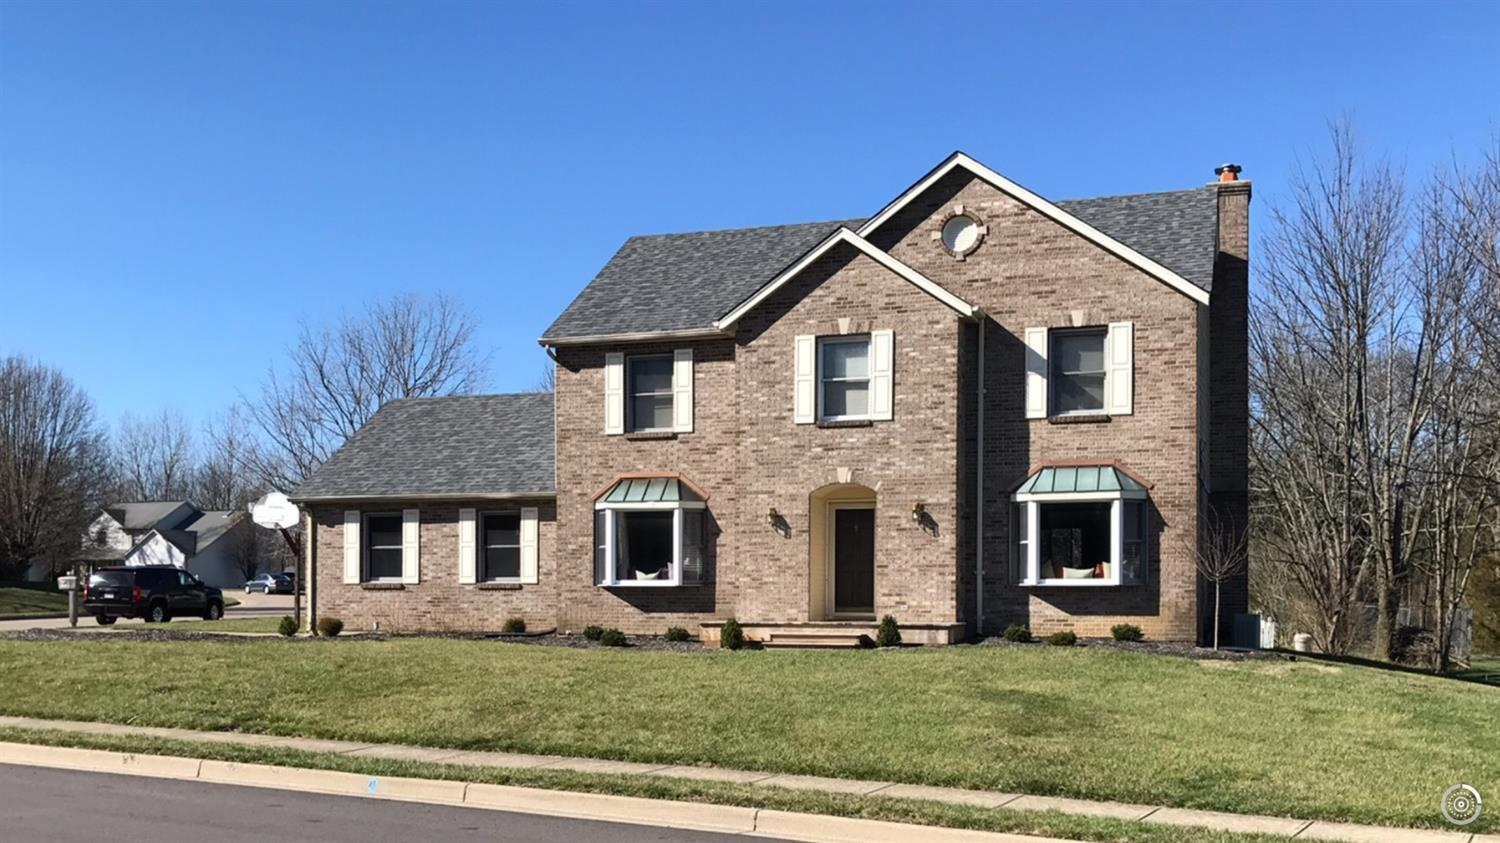 1410 dana dr oxford oh mls 1546385 better homes and gardens real estate for Better homes and gardens real estate rentals